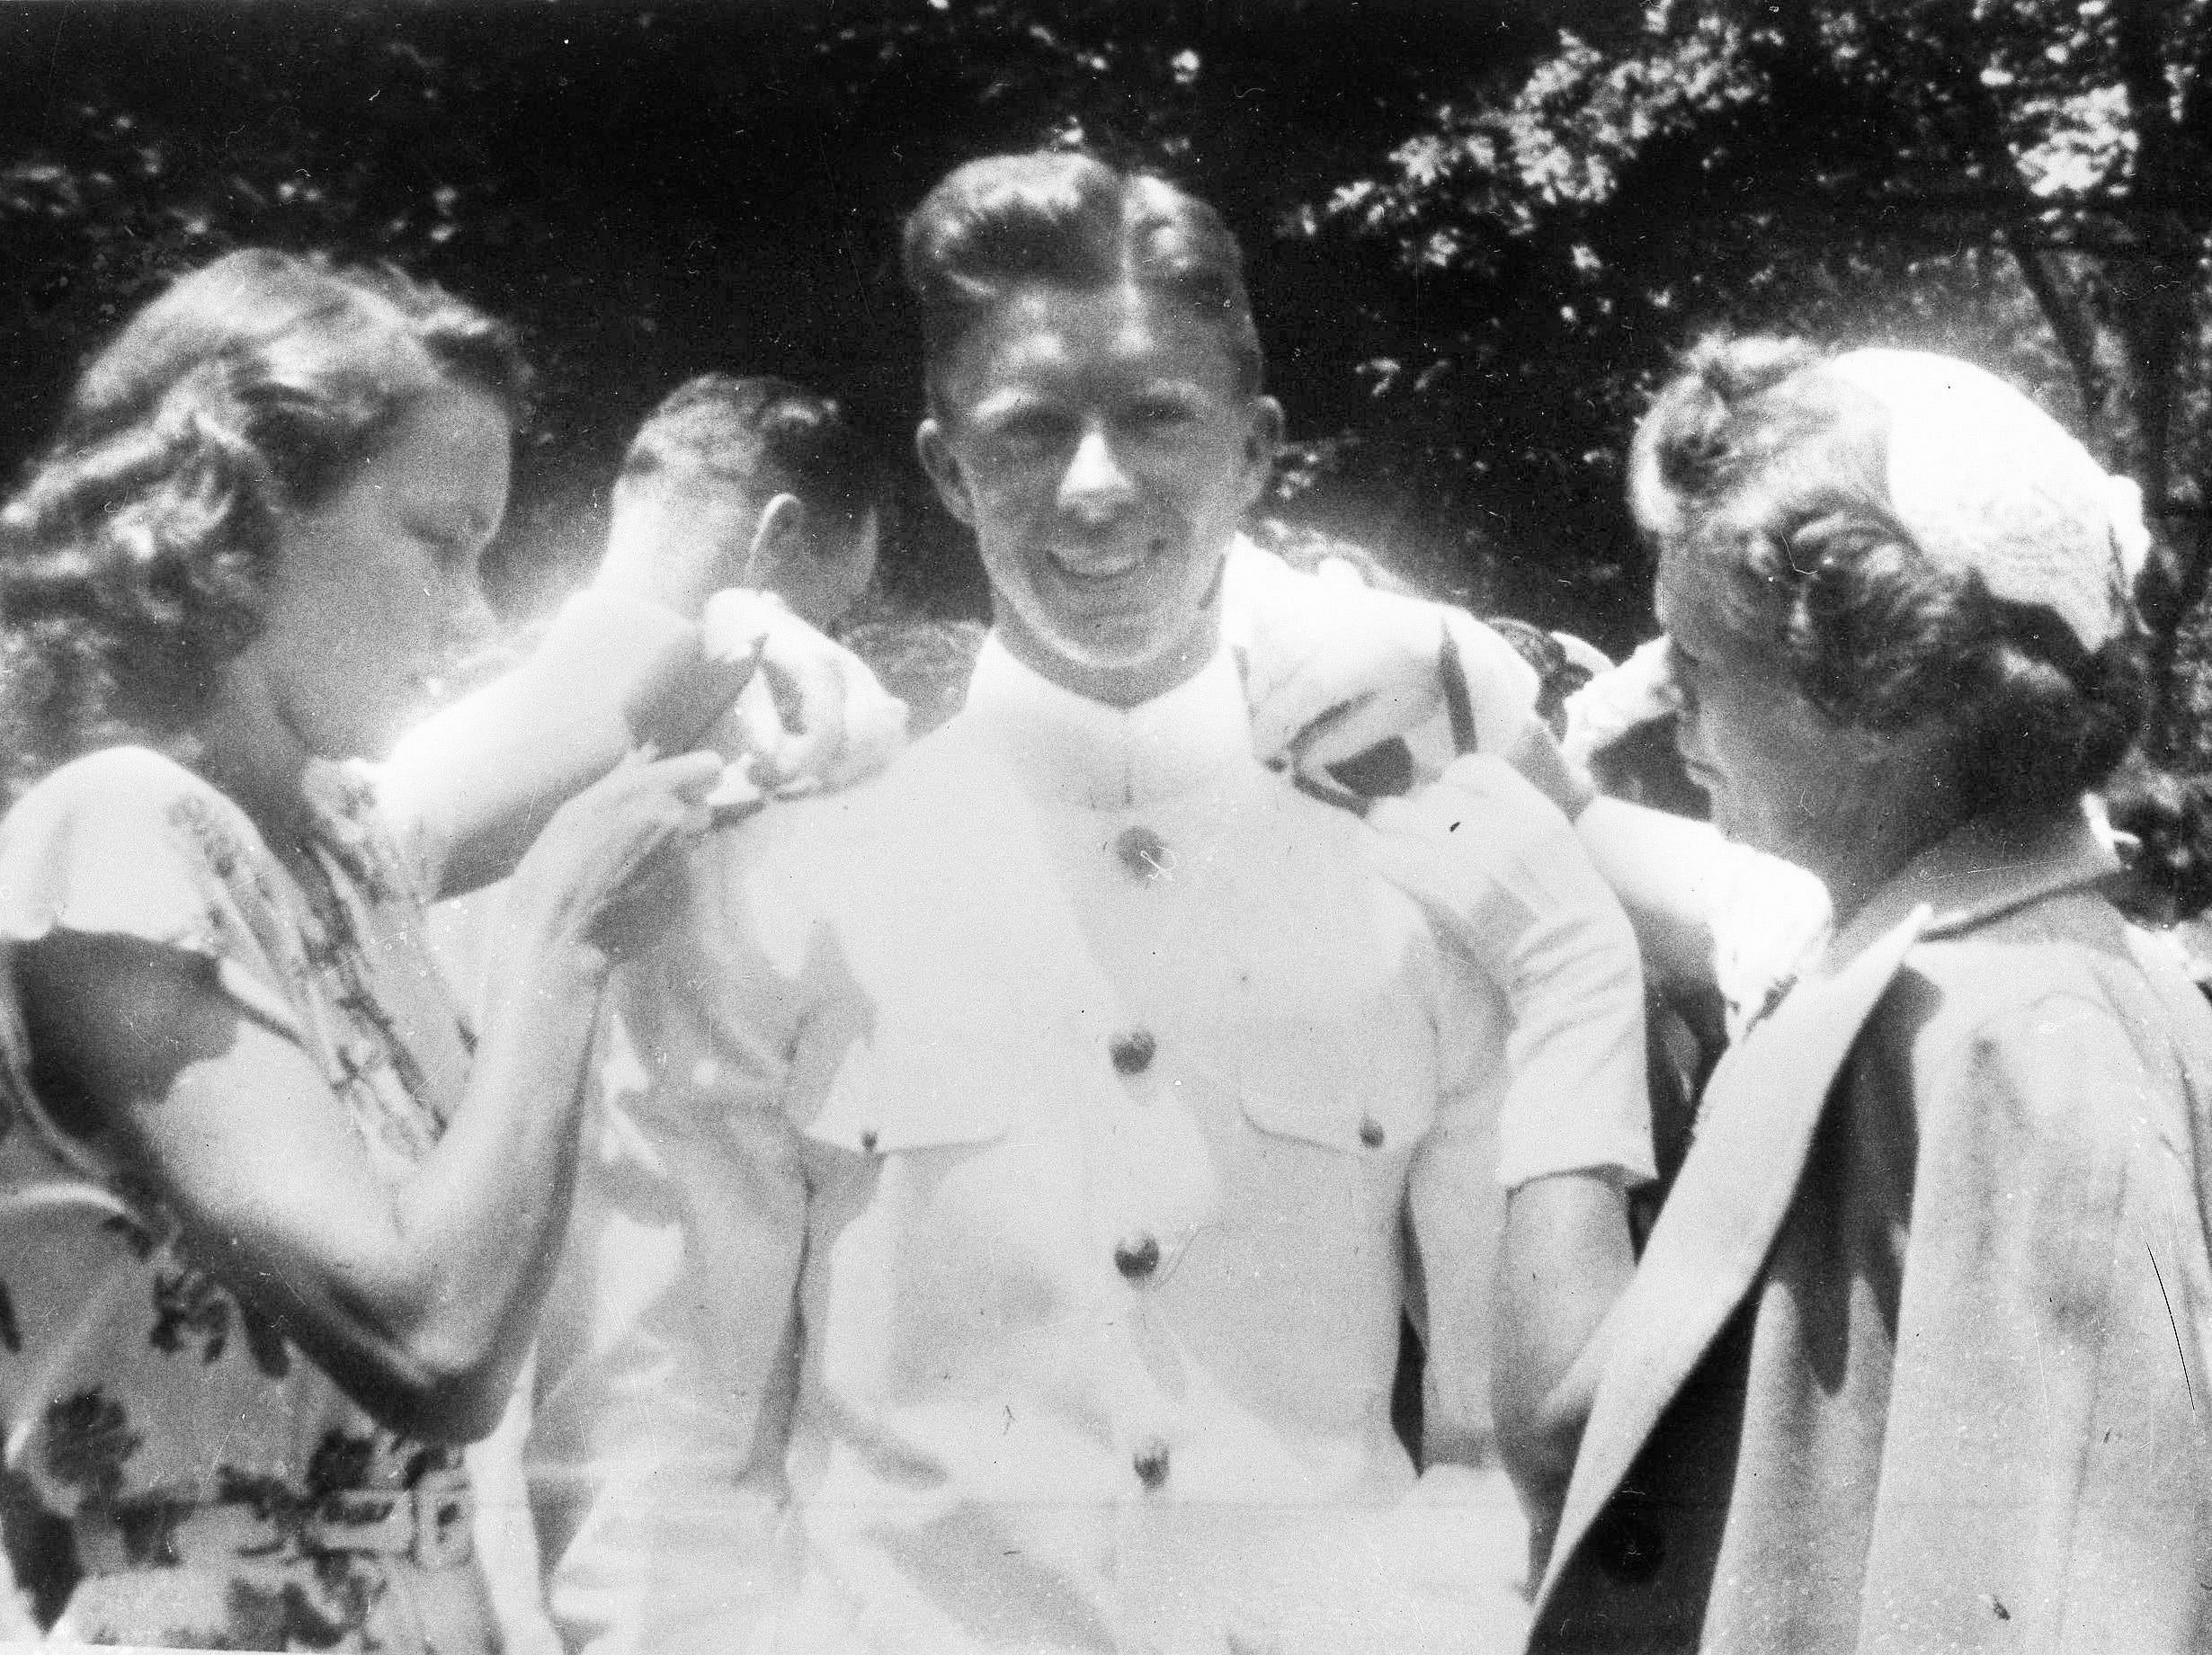 Jimmy Carter gets his bars pinned on by his wife Rosalynn, left and his mother, Mrs. Lillian Carter at the U.S. Naval Academy in this undated photo.